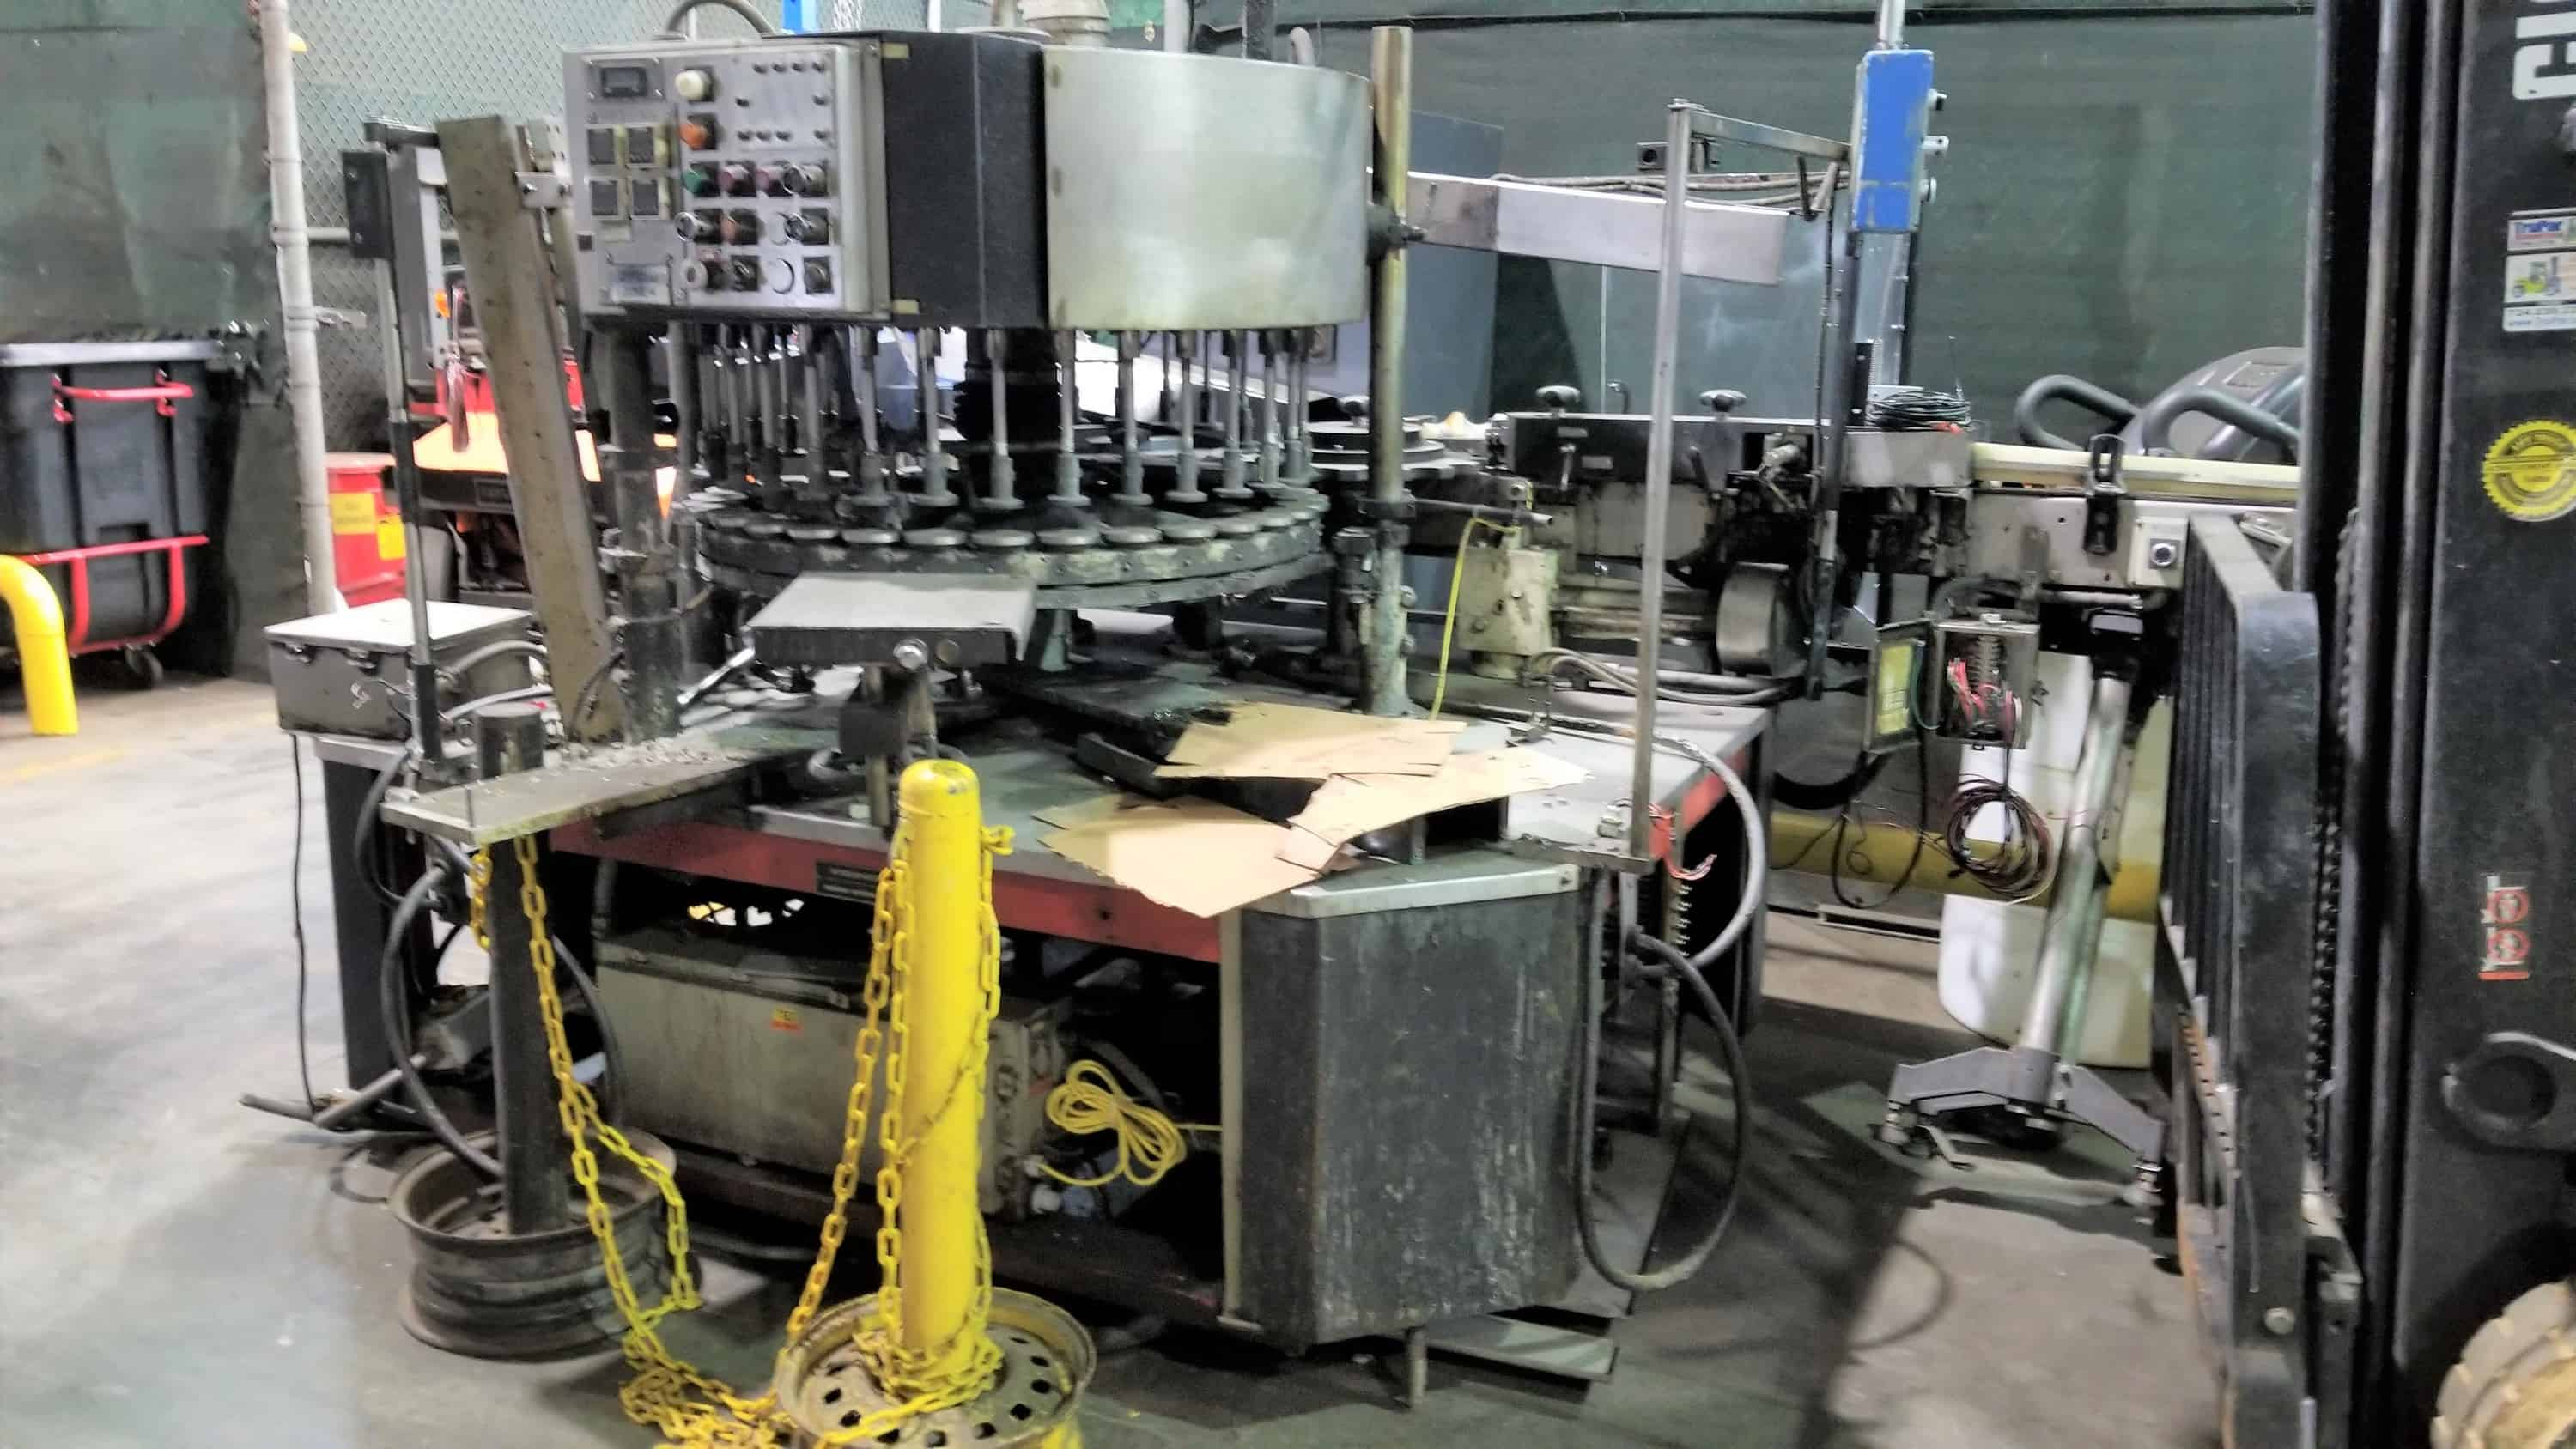 Krones Rotary In-Line Labeler, Model Canmatic, Model 80-A09, ( (Note: Missing Some Parts), (Located in Main Packaging Area)